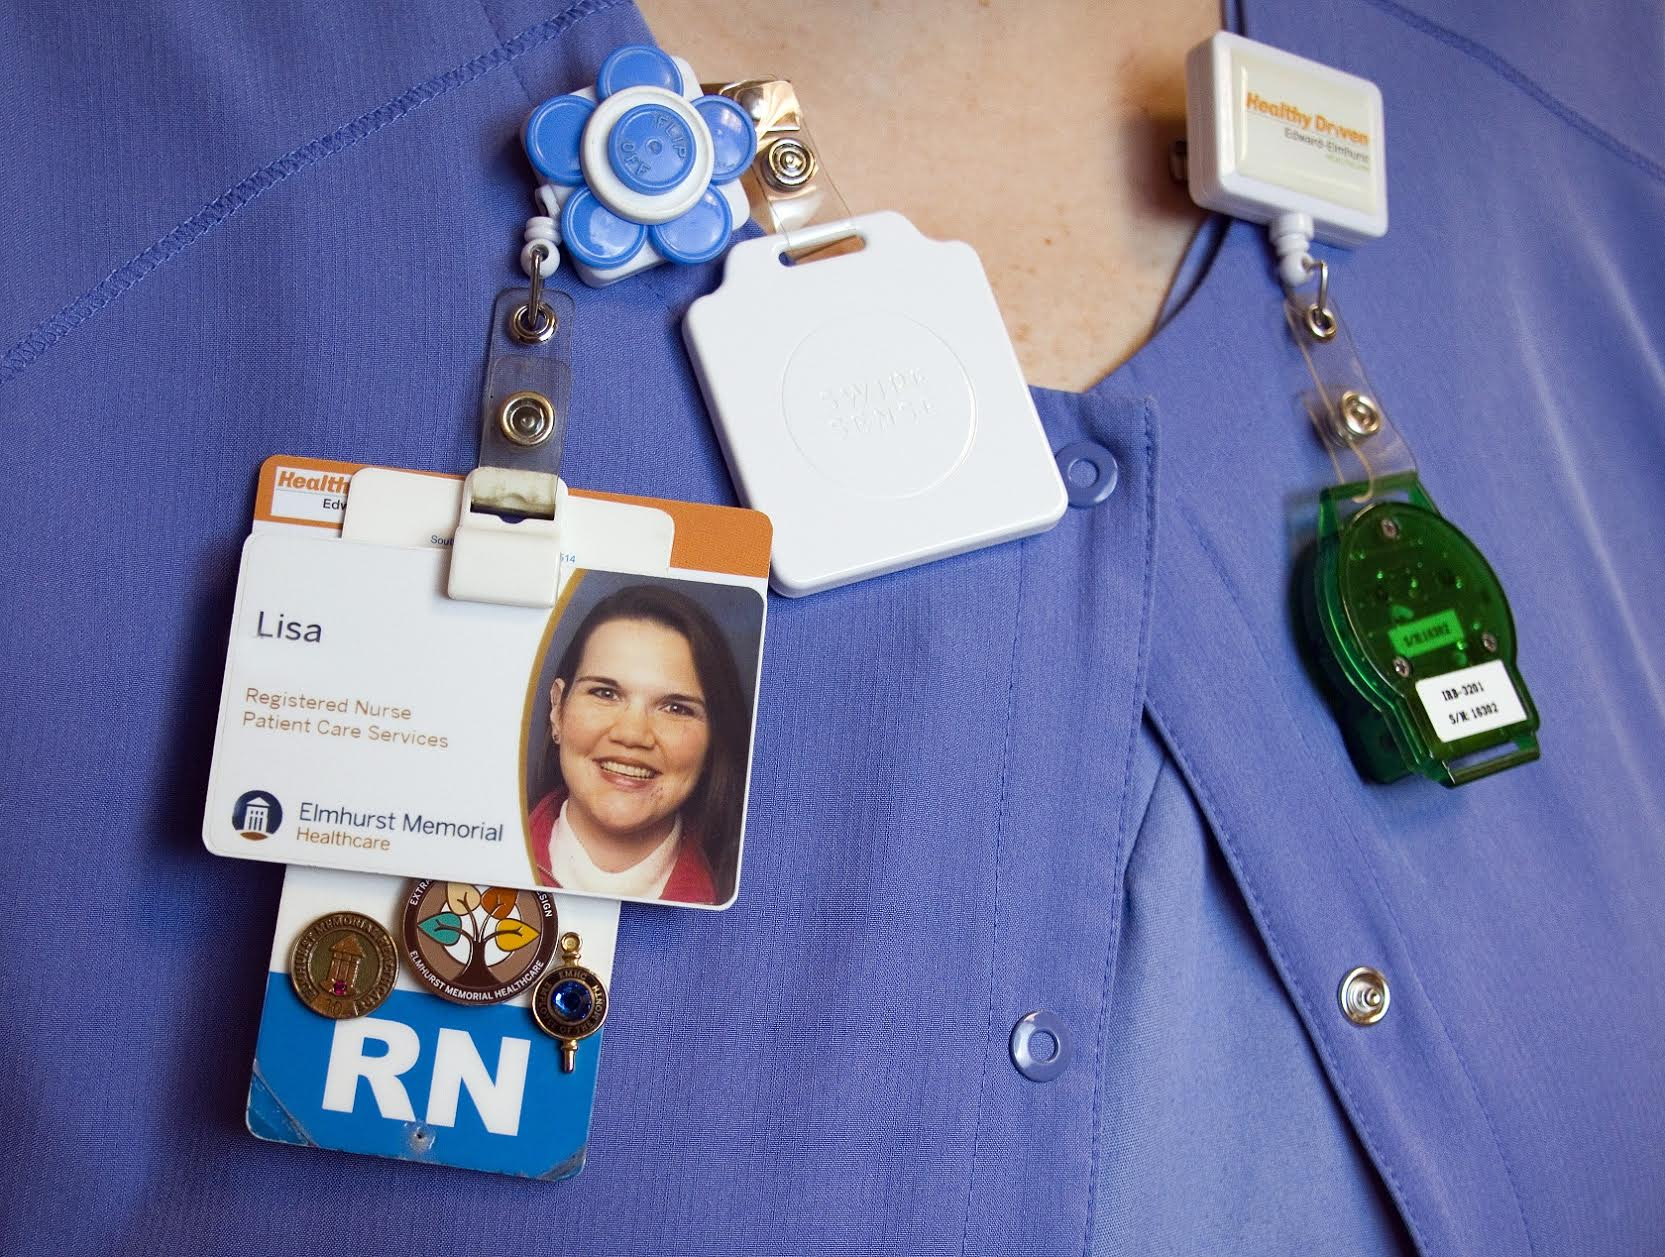 SwipeSense uses sensors in badges to track the coronavirus